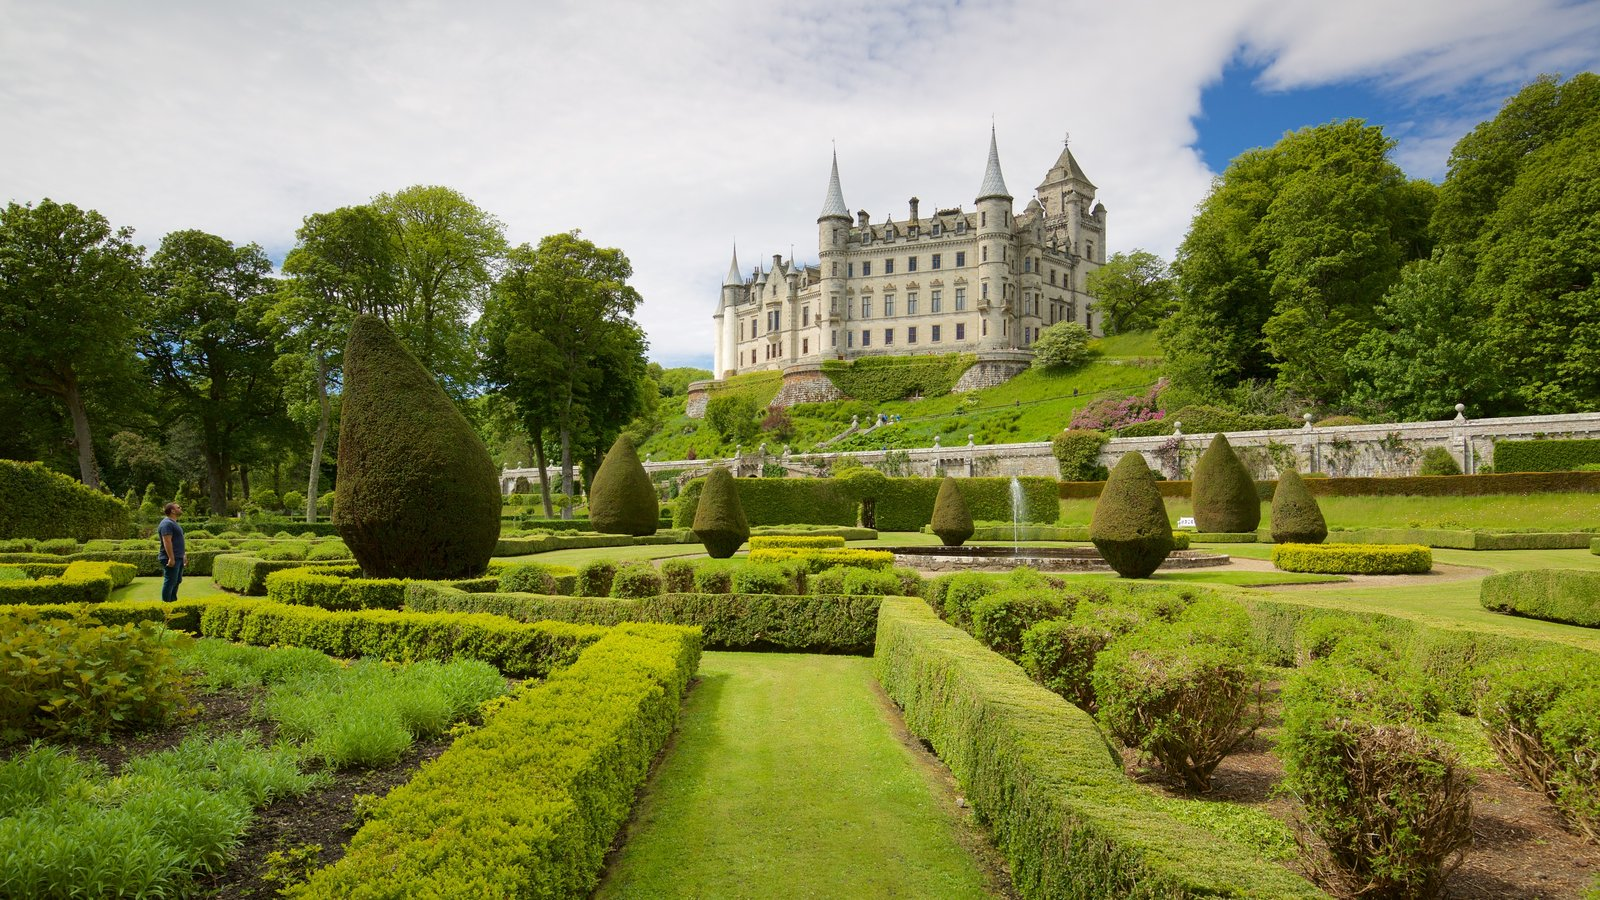 Dunrobin Castle which includes heritage elements, a park and chateau or palace